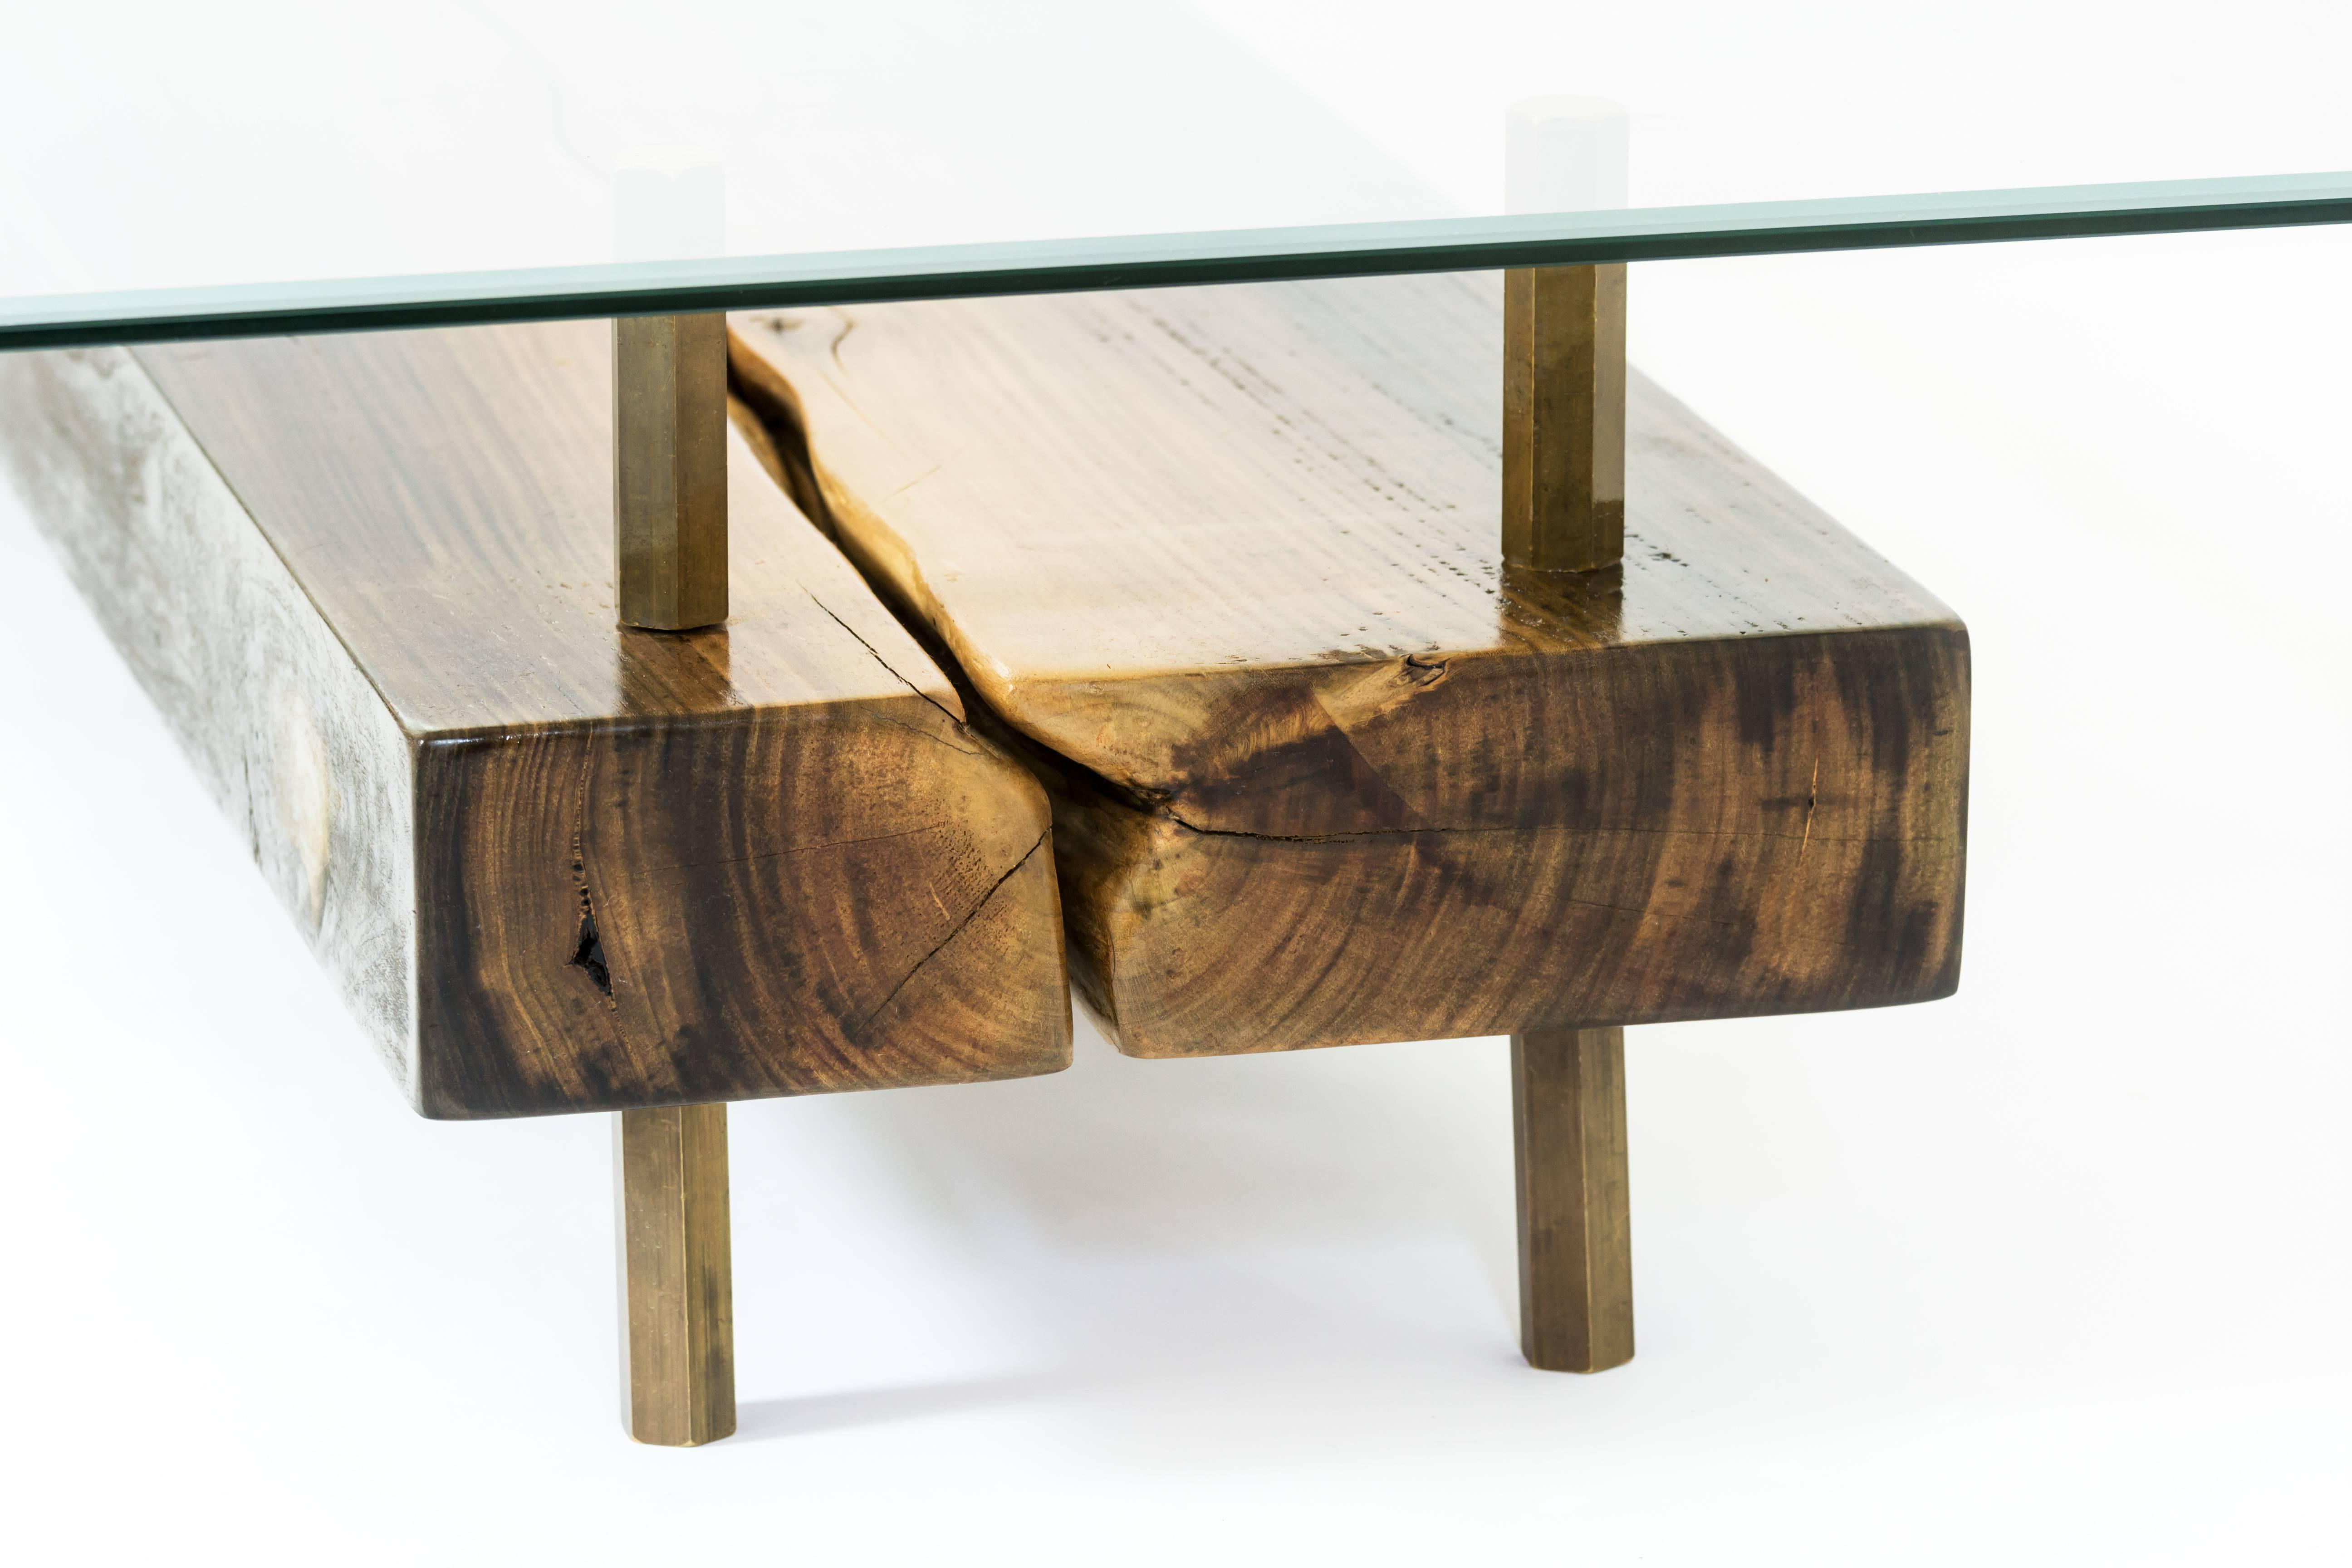 Trendy Rectangular Connection Of Mahoe Wood, Brass Legs And Glass Cocktail Regarding Rectangular Coffee Tables With Brass Legs (View 5 of 20)